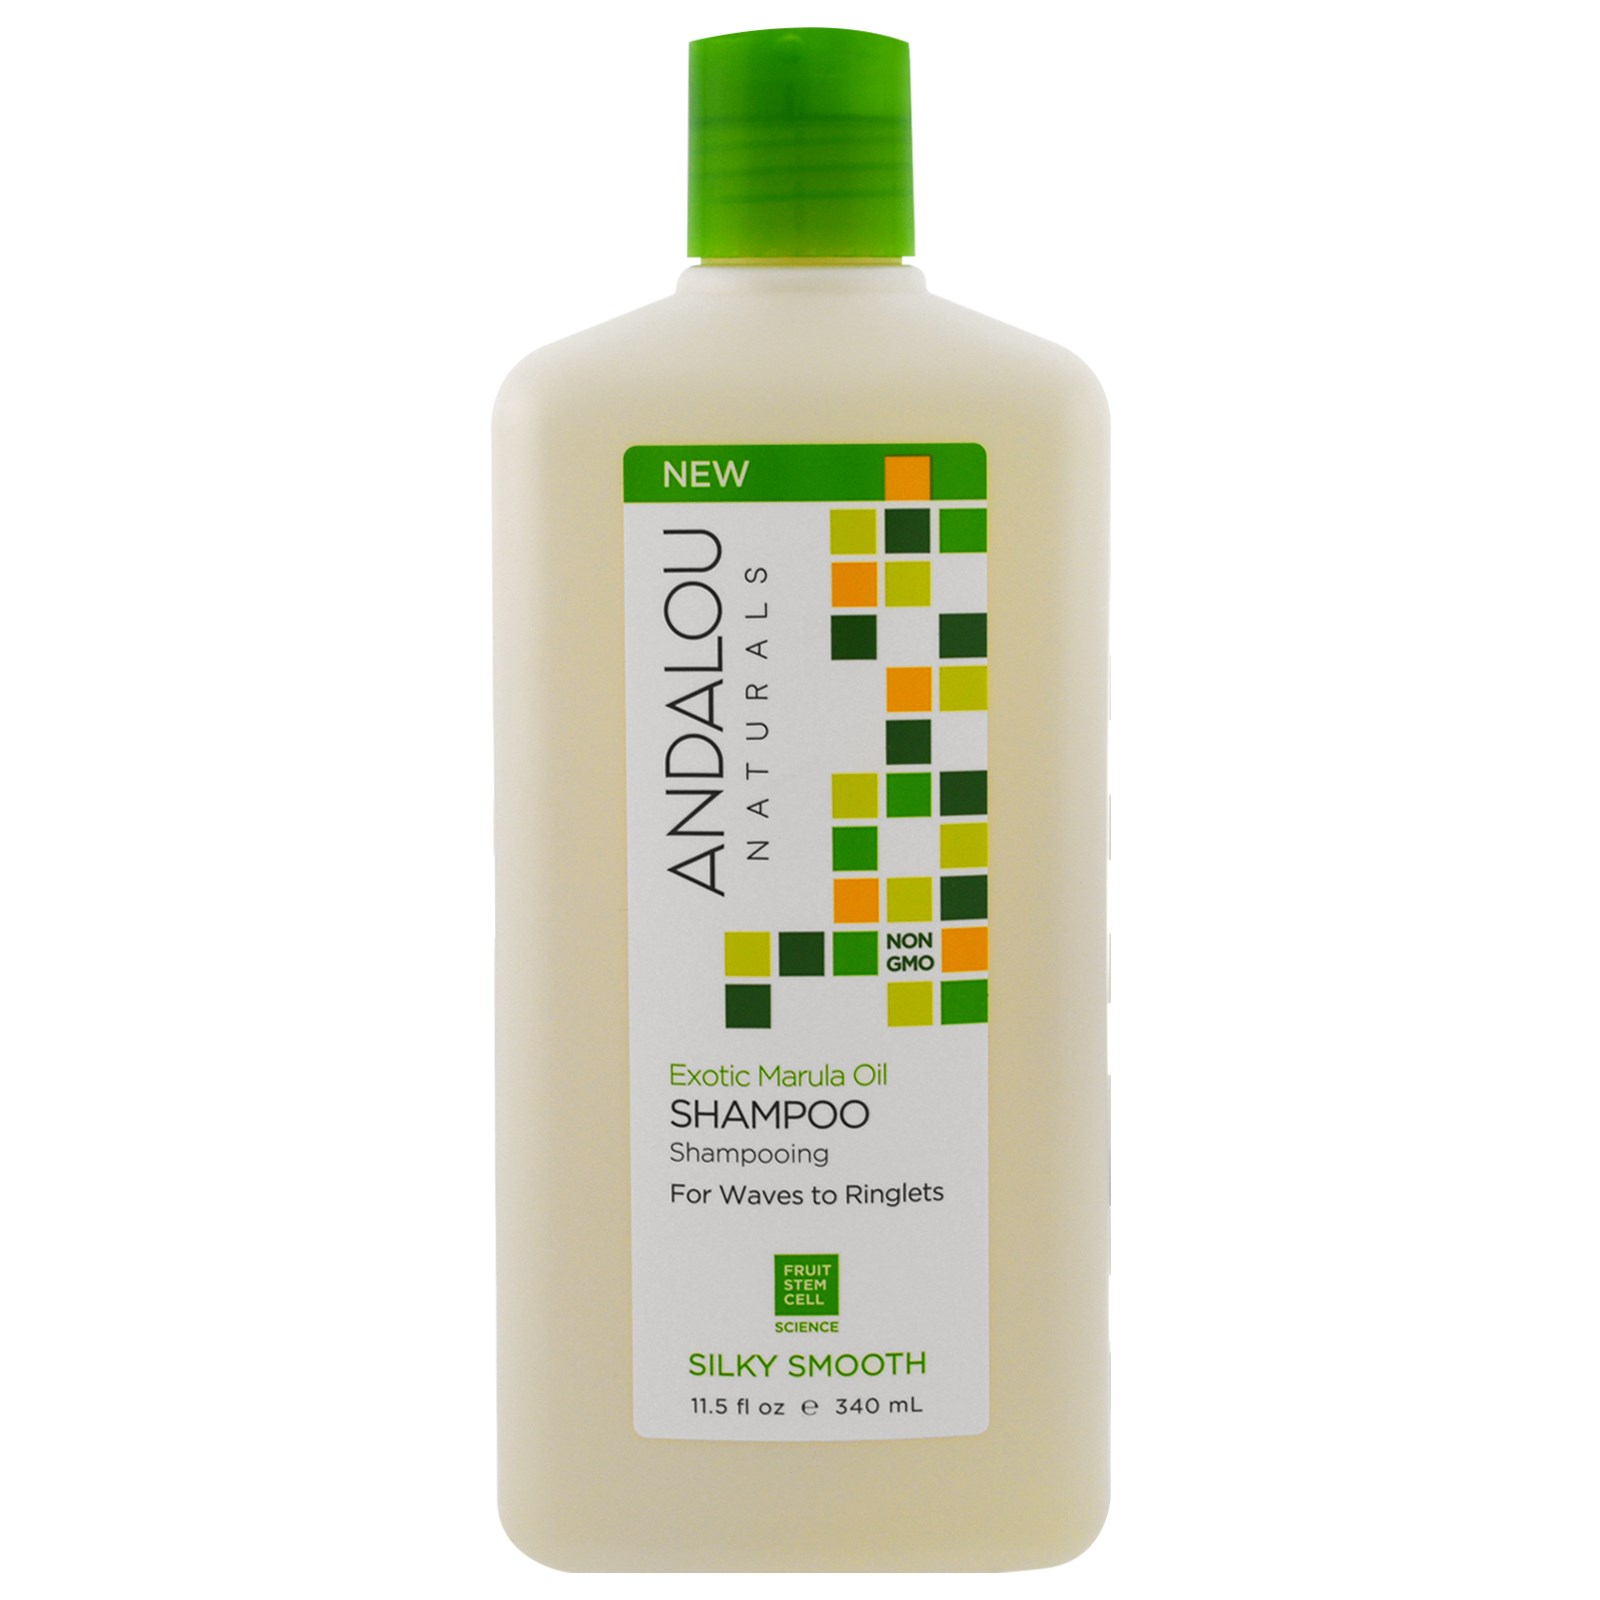 Andalou Naturals Shampoo Silky Smooth For Waves To Ringlets Clear Shampo Csoft Care 340ml Exotic Marula Oil